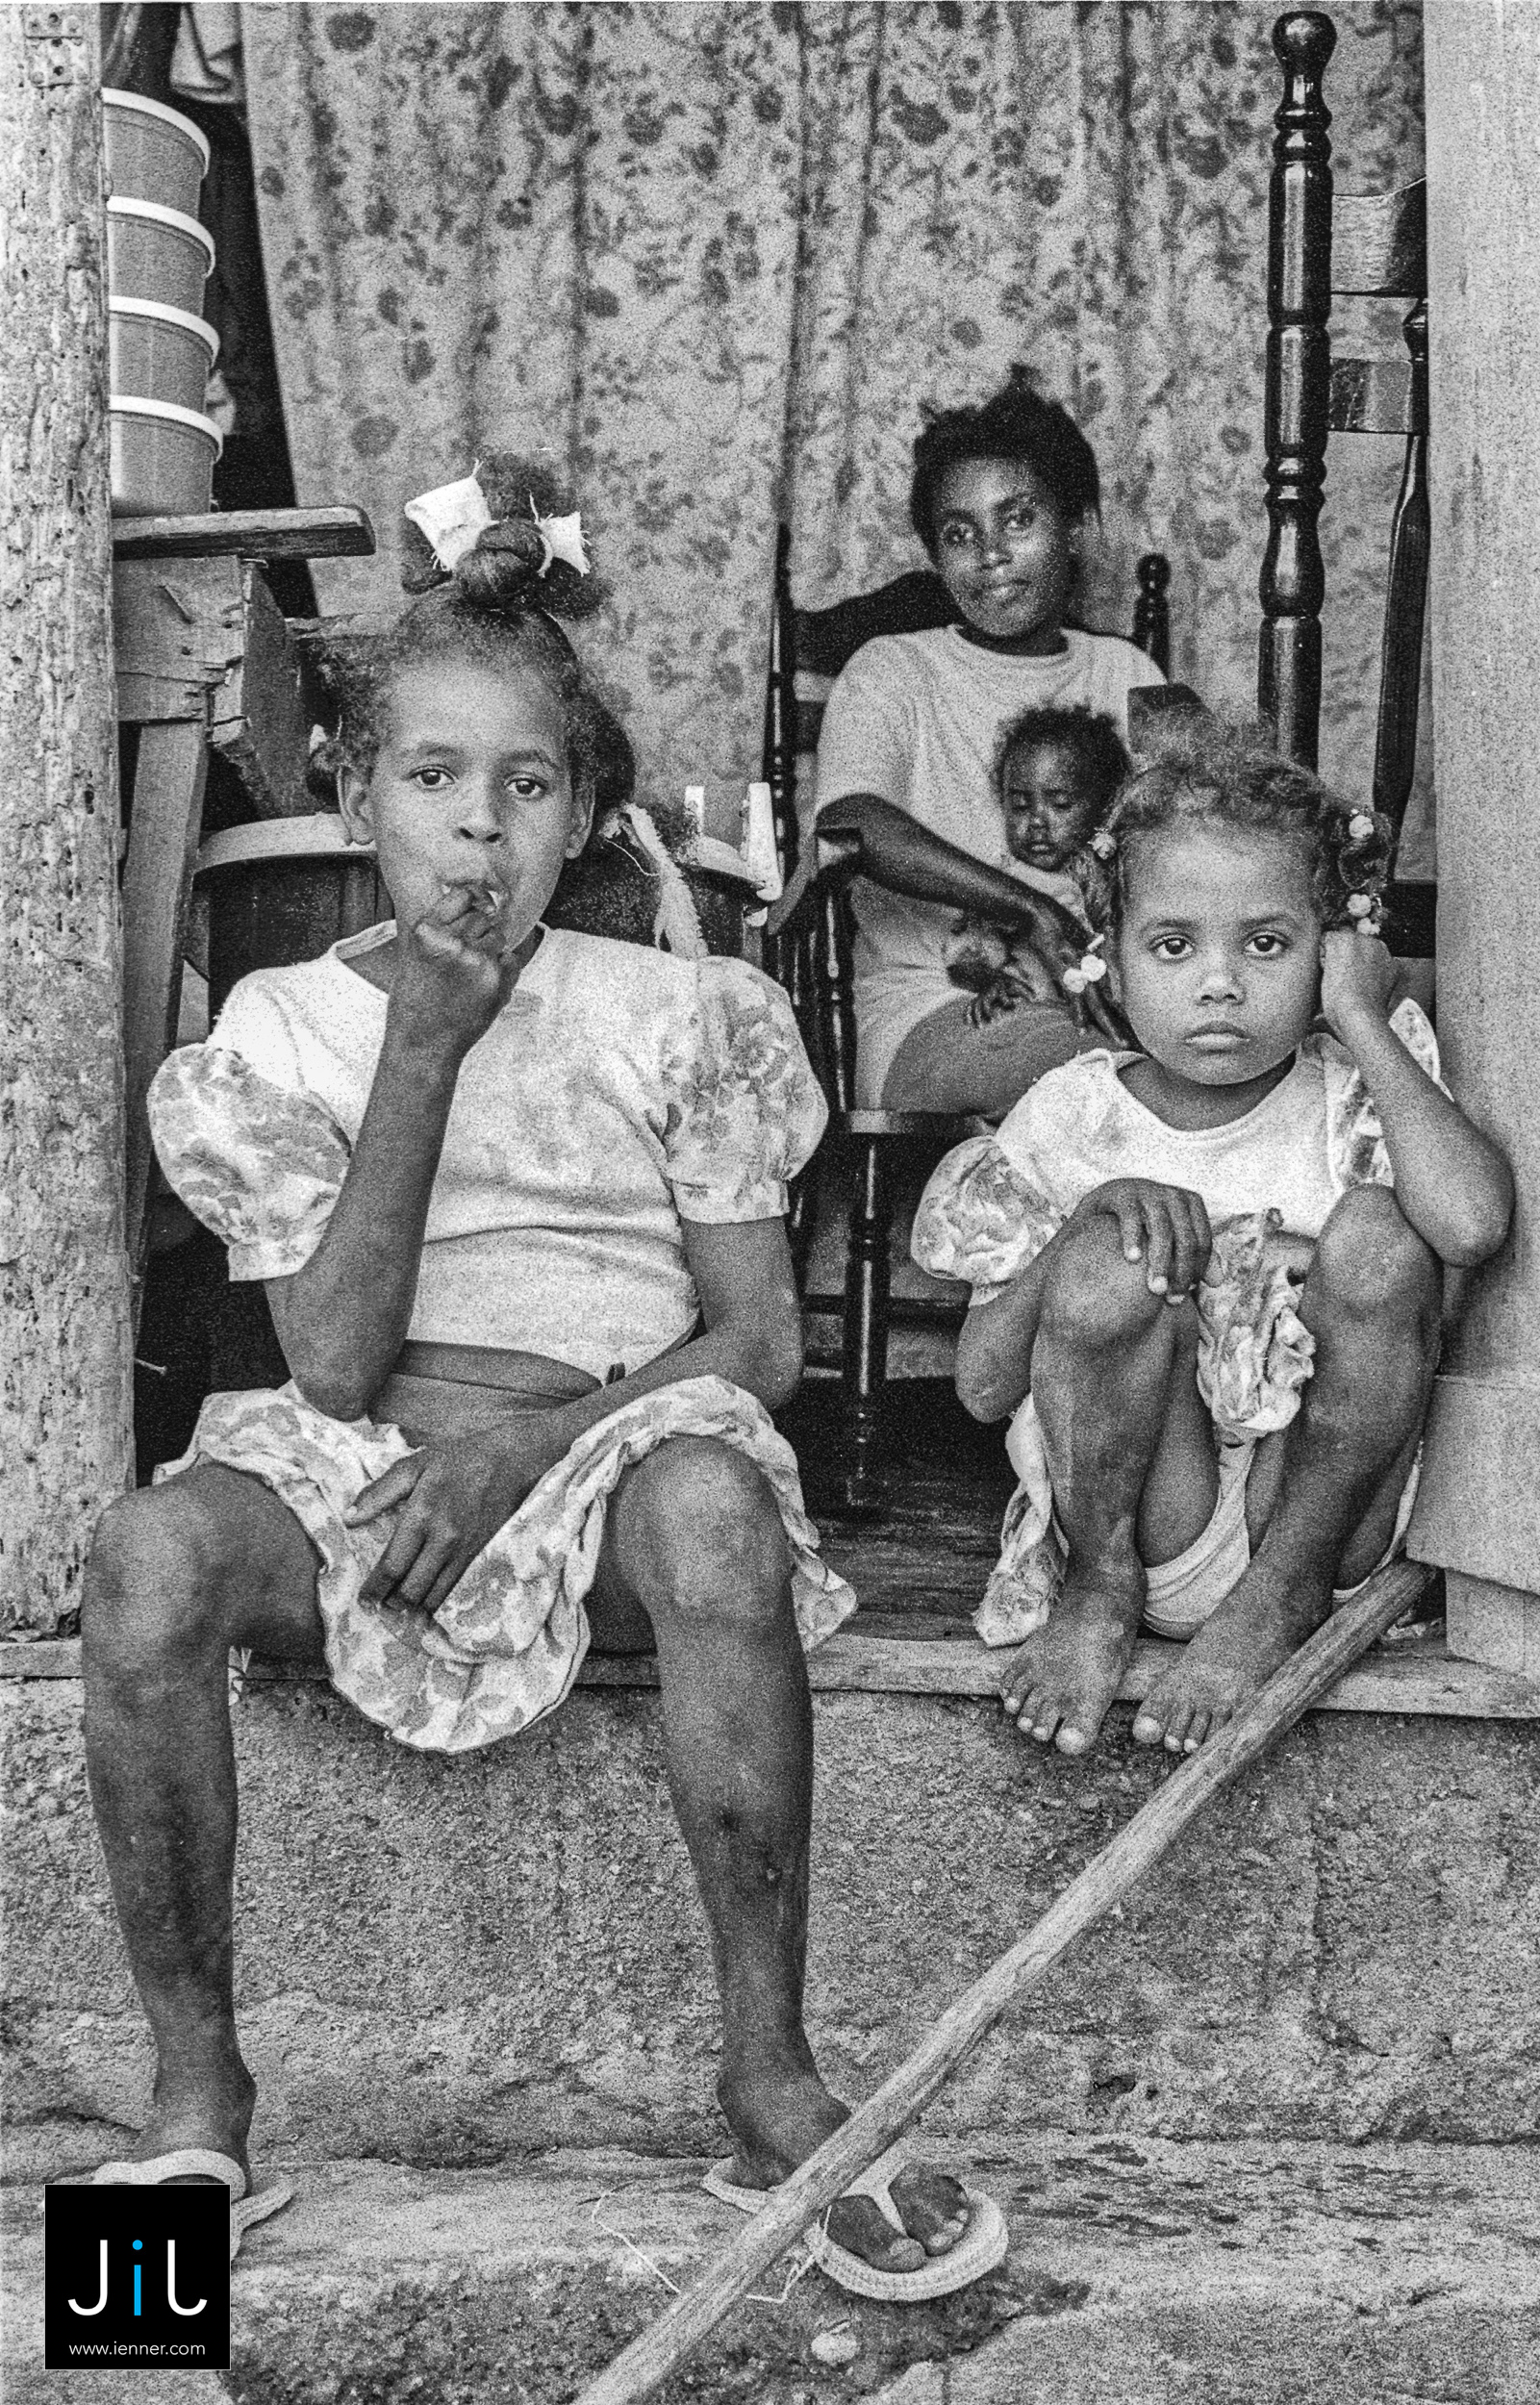 Photojournalism - Dominican Republic